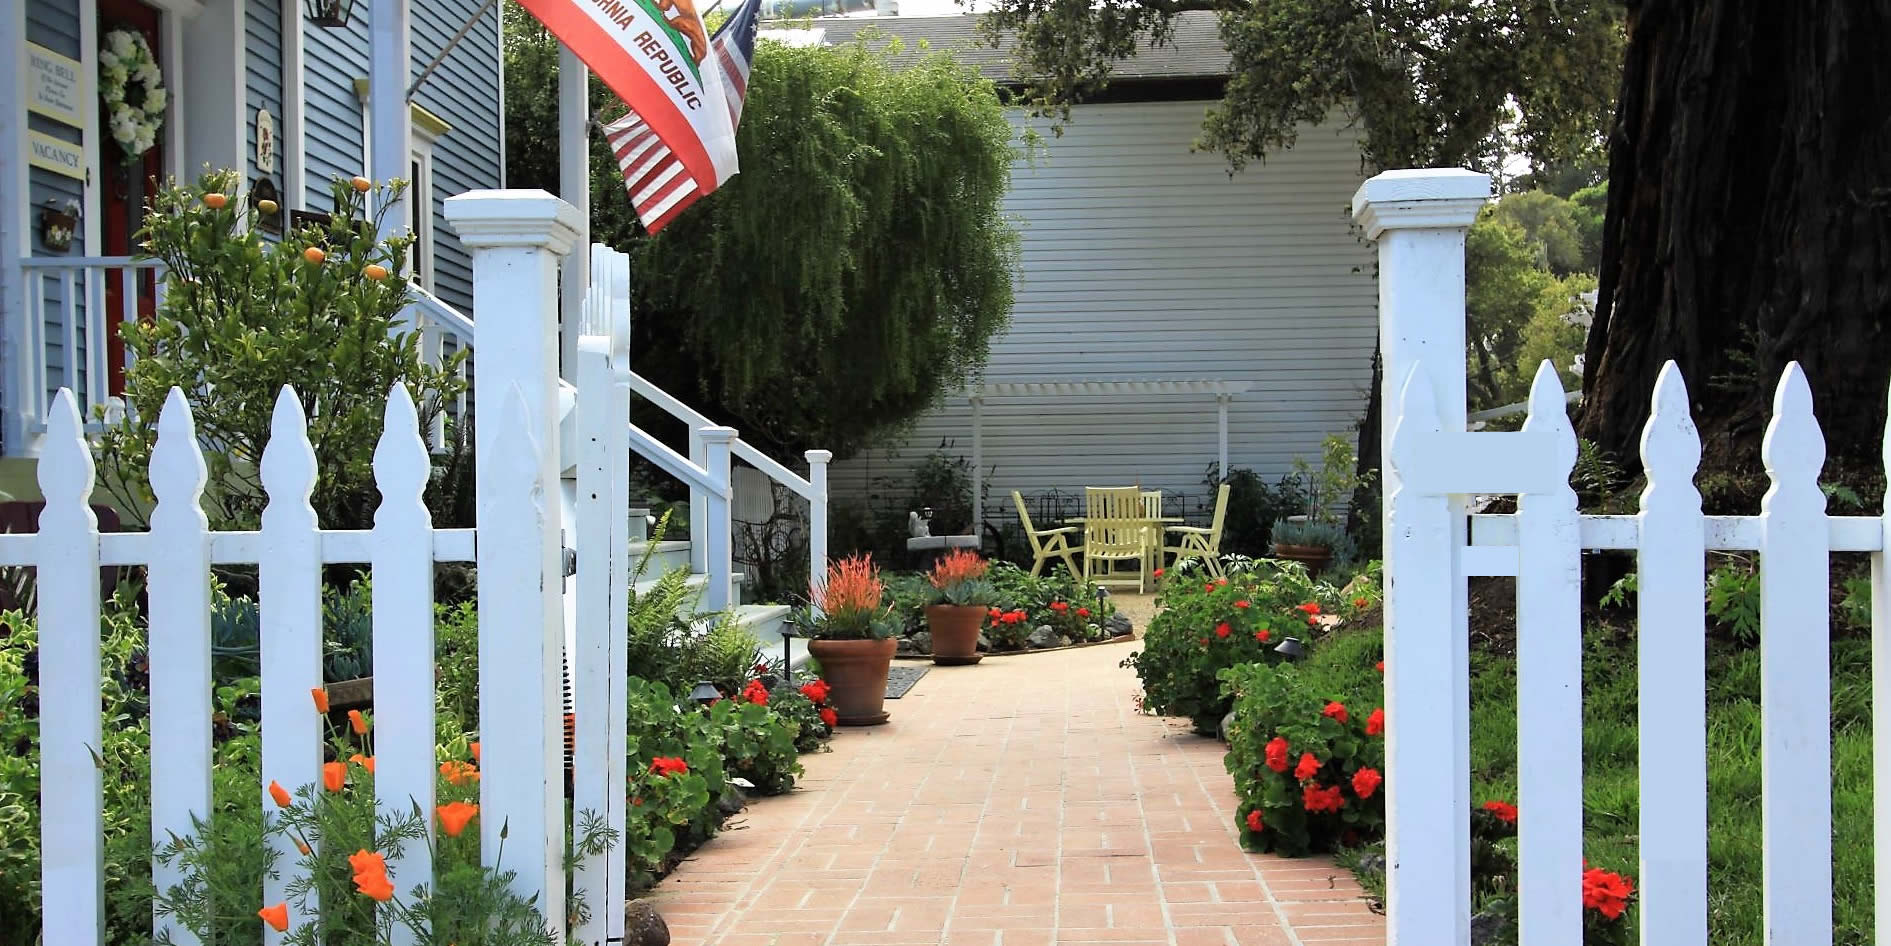 olallieberry inn gardens and gate into the bed and breakfast with flags flying